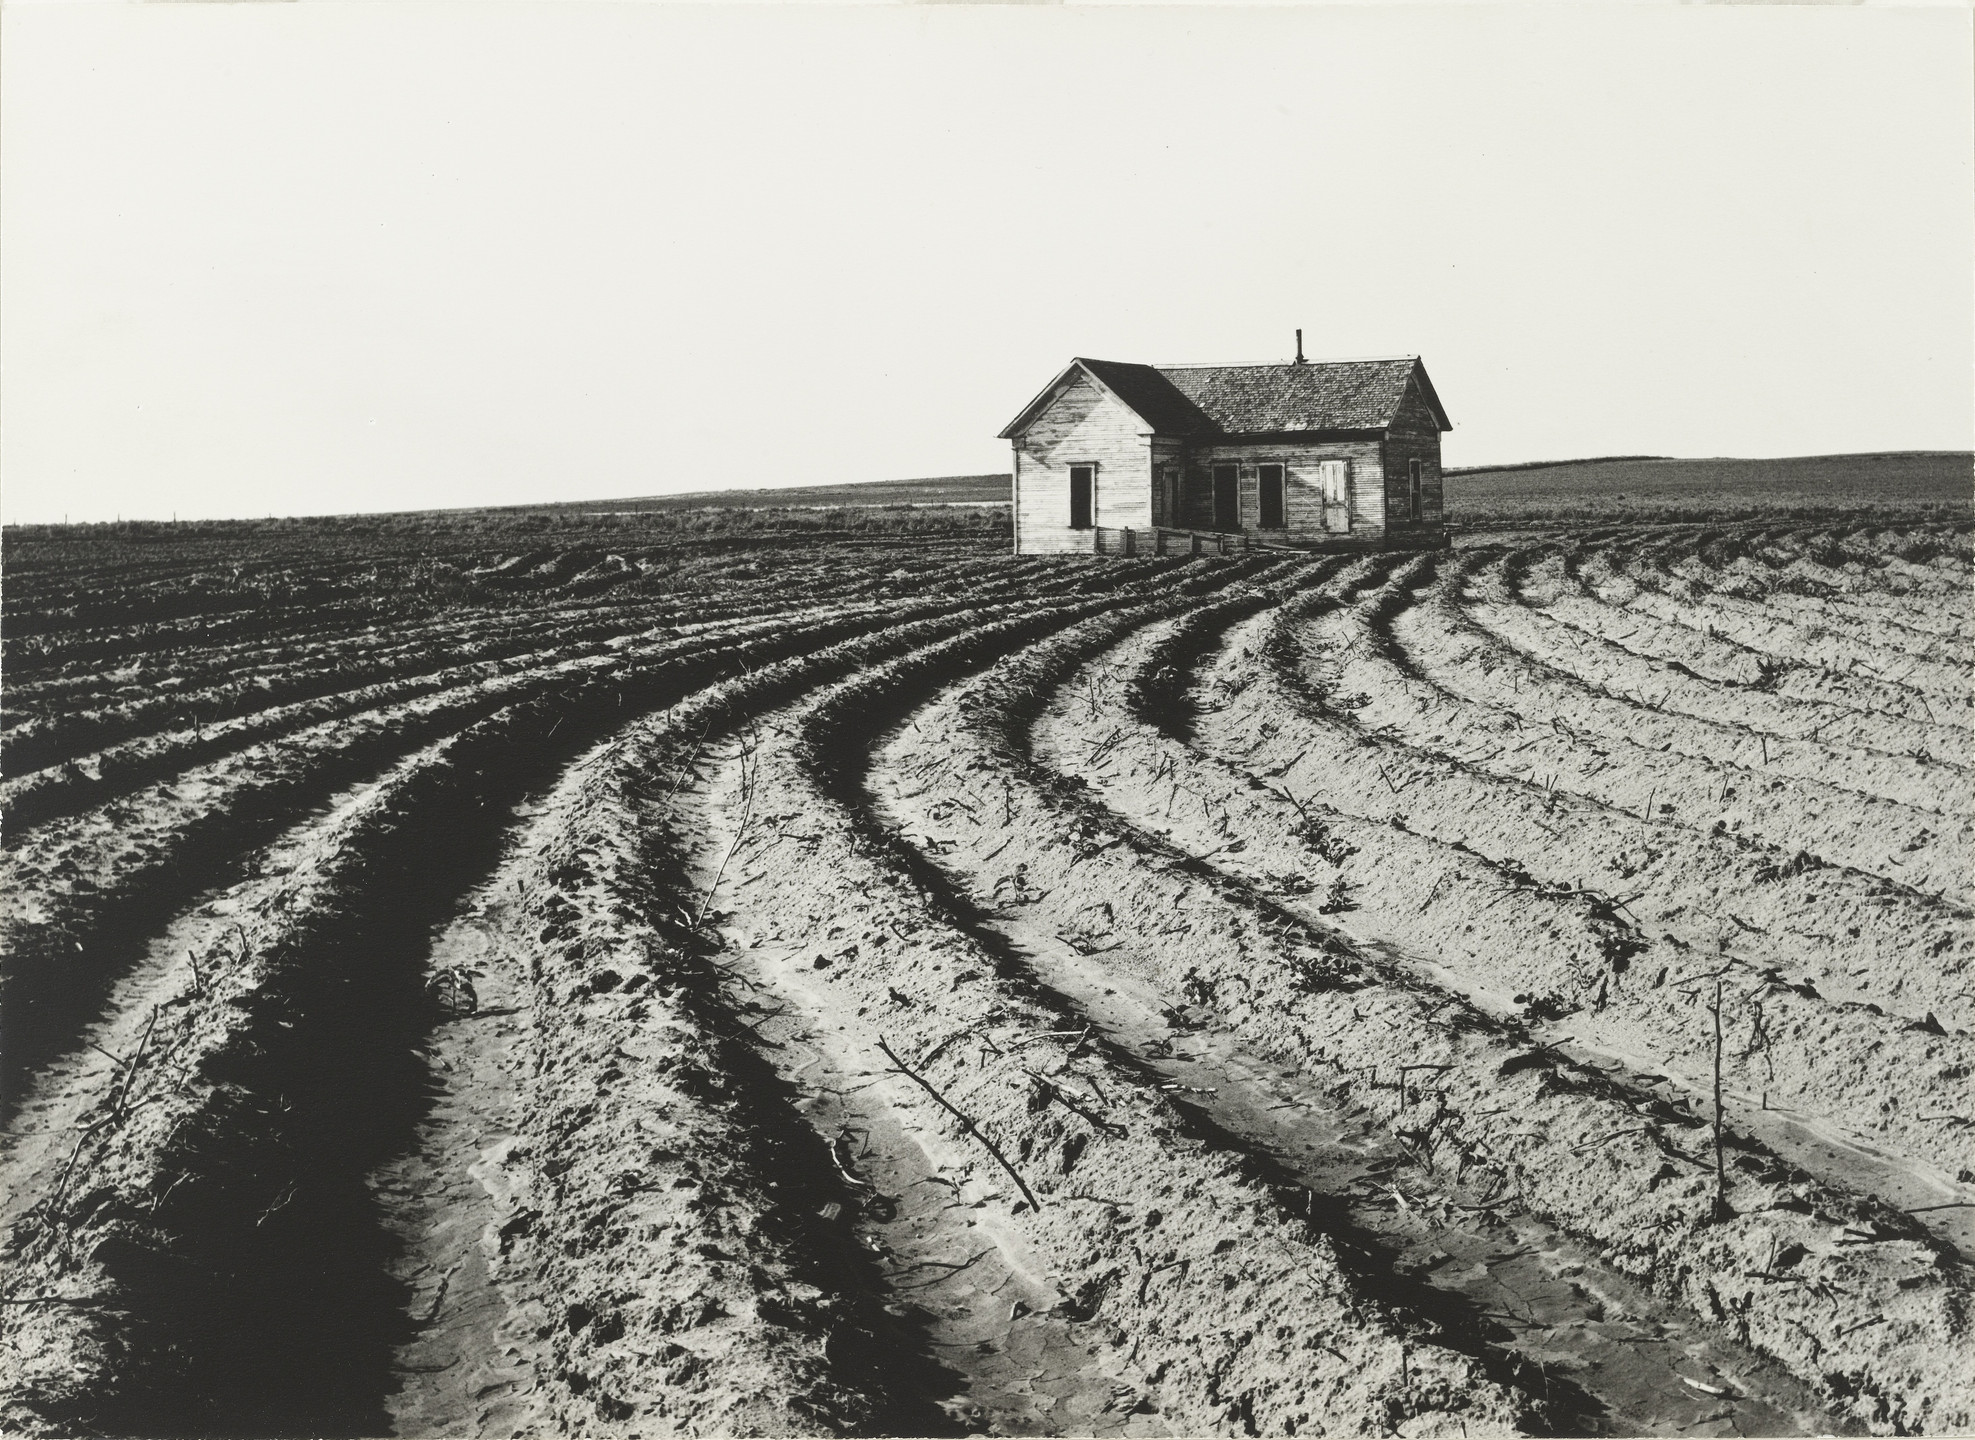 Dorothea Lange. Tractored Out, Childress County, Texas. June 1938